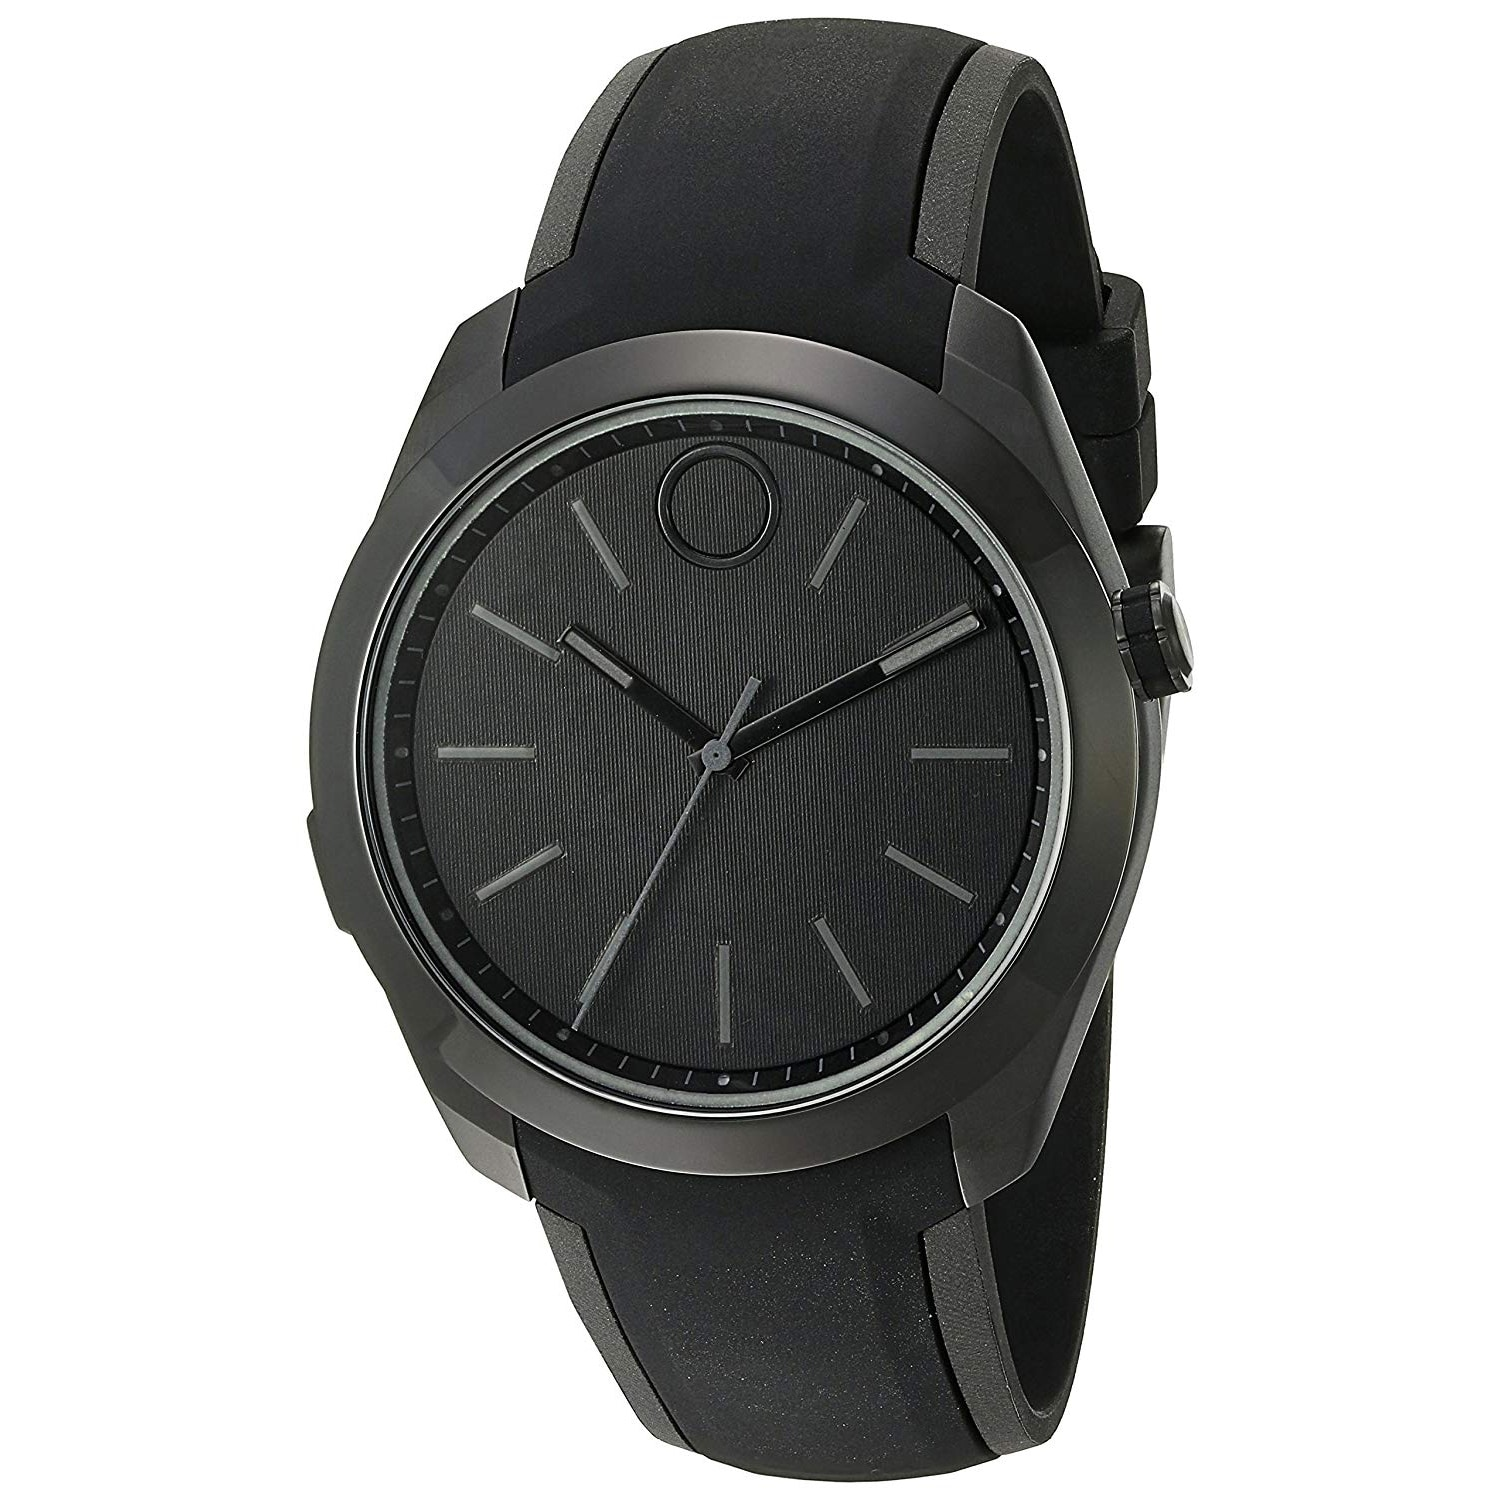 3c7fac0277db8 Shop Movado Men s Bold 3660002 Black Dial Watch - Free Shipping Today -  Overstock - 25452590